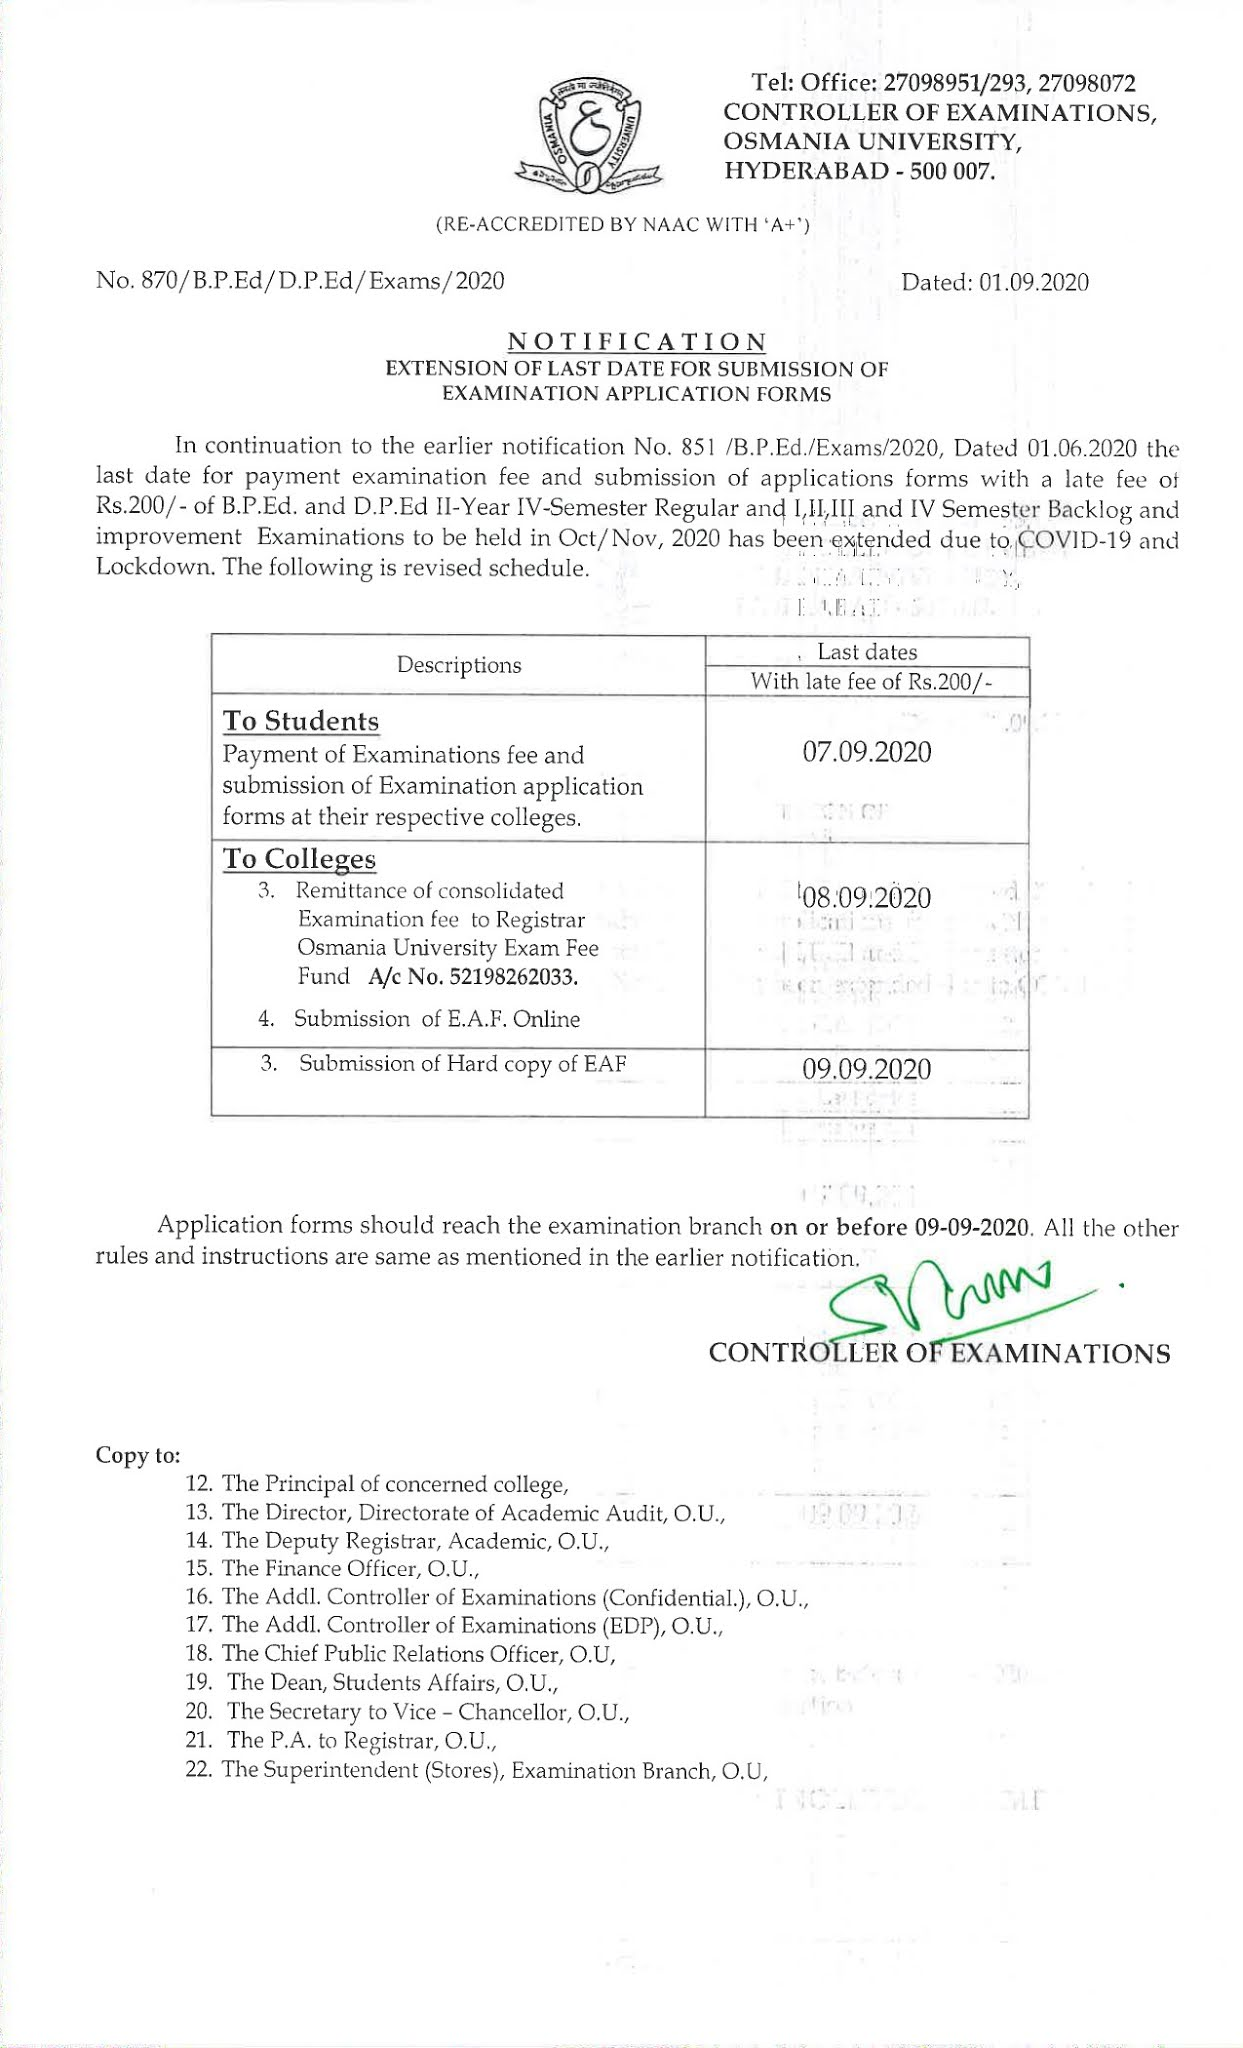 Osmania University BP.Ed & DP.Ed Oct 2020 Exam Fee Notification